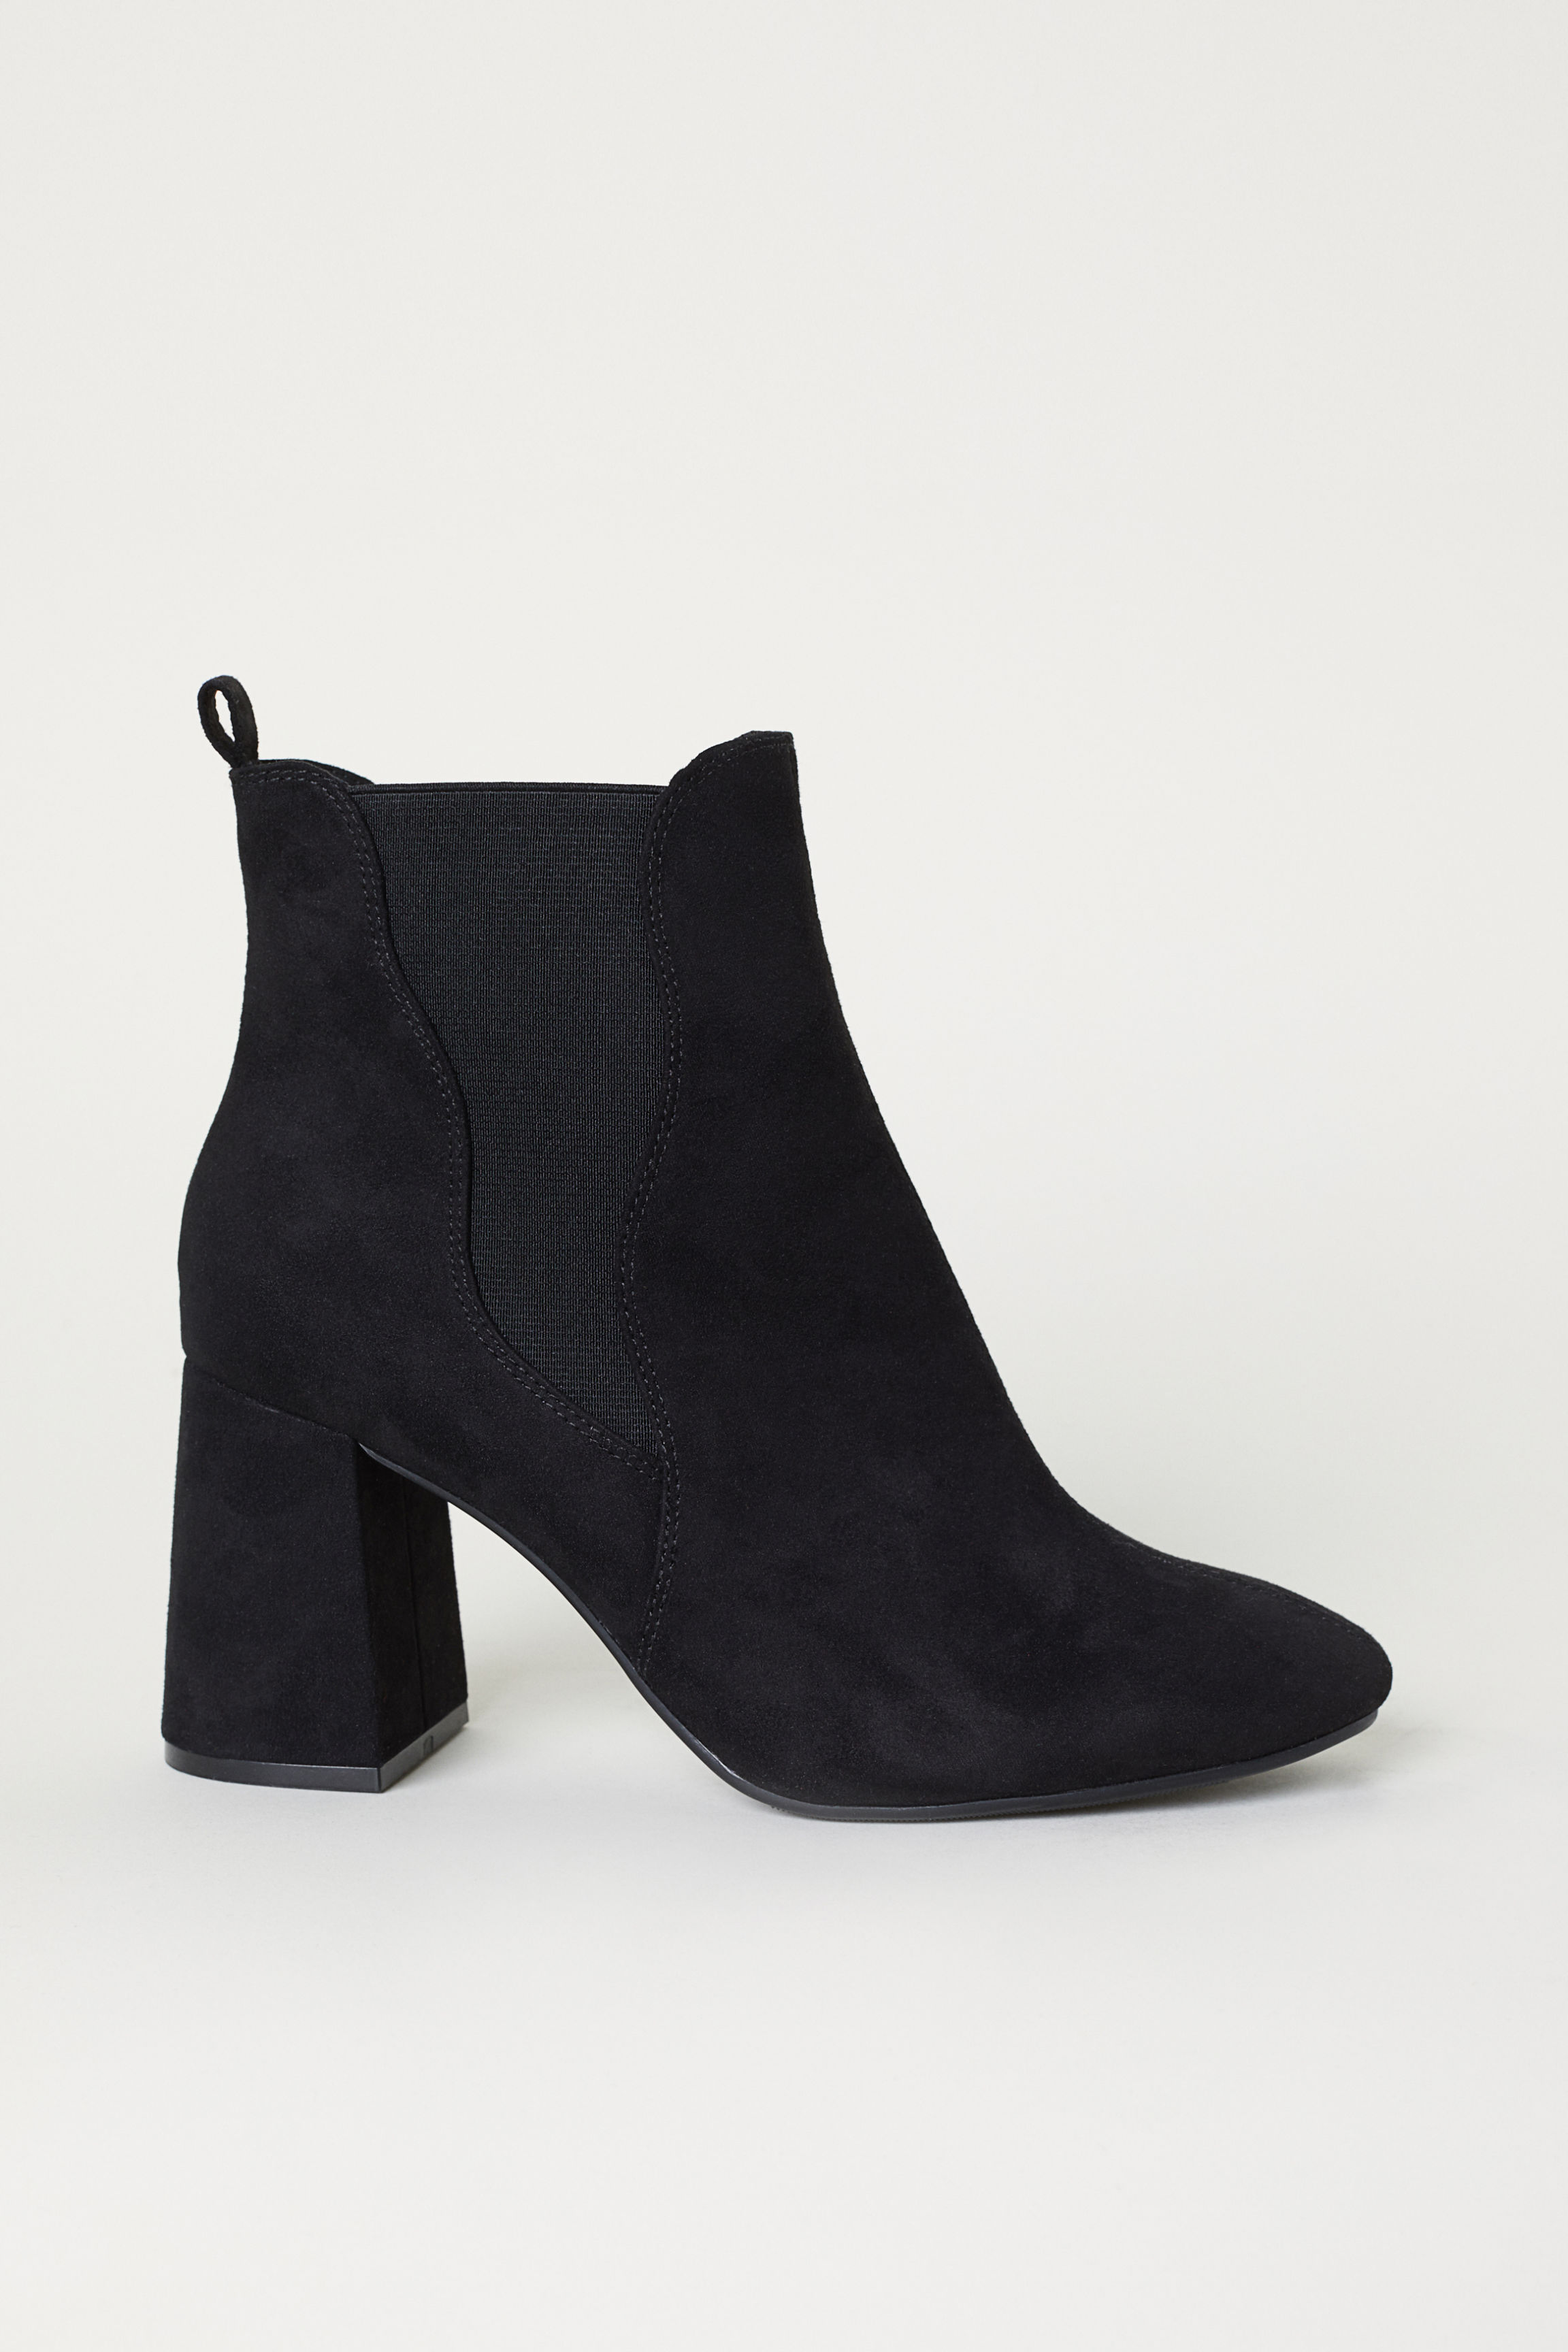 3db347125ab Ankle Boots with Side Panels - Black floral -